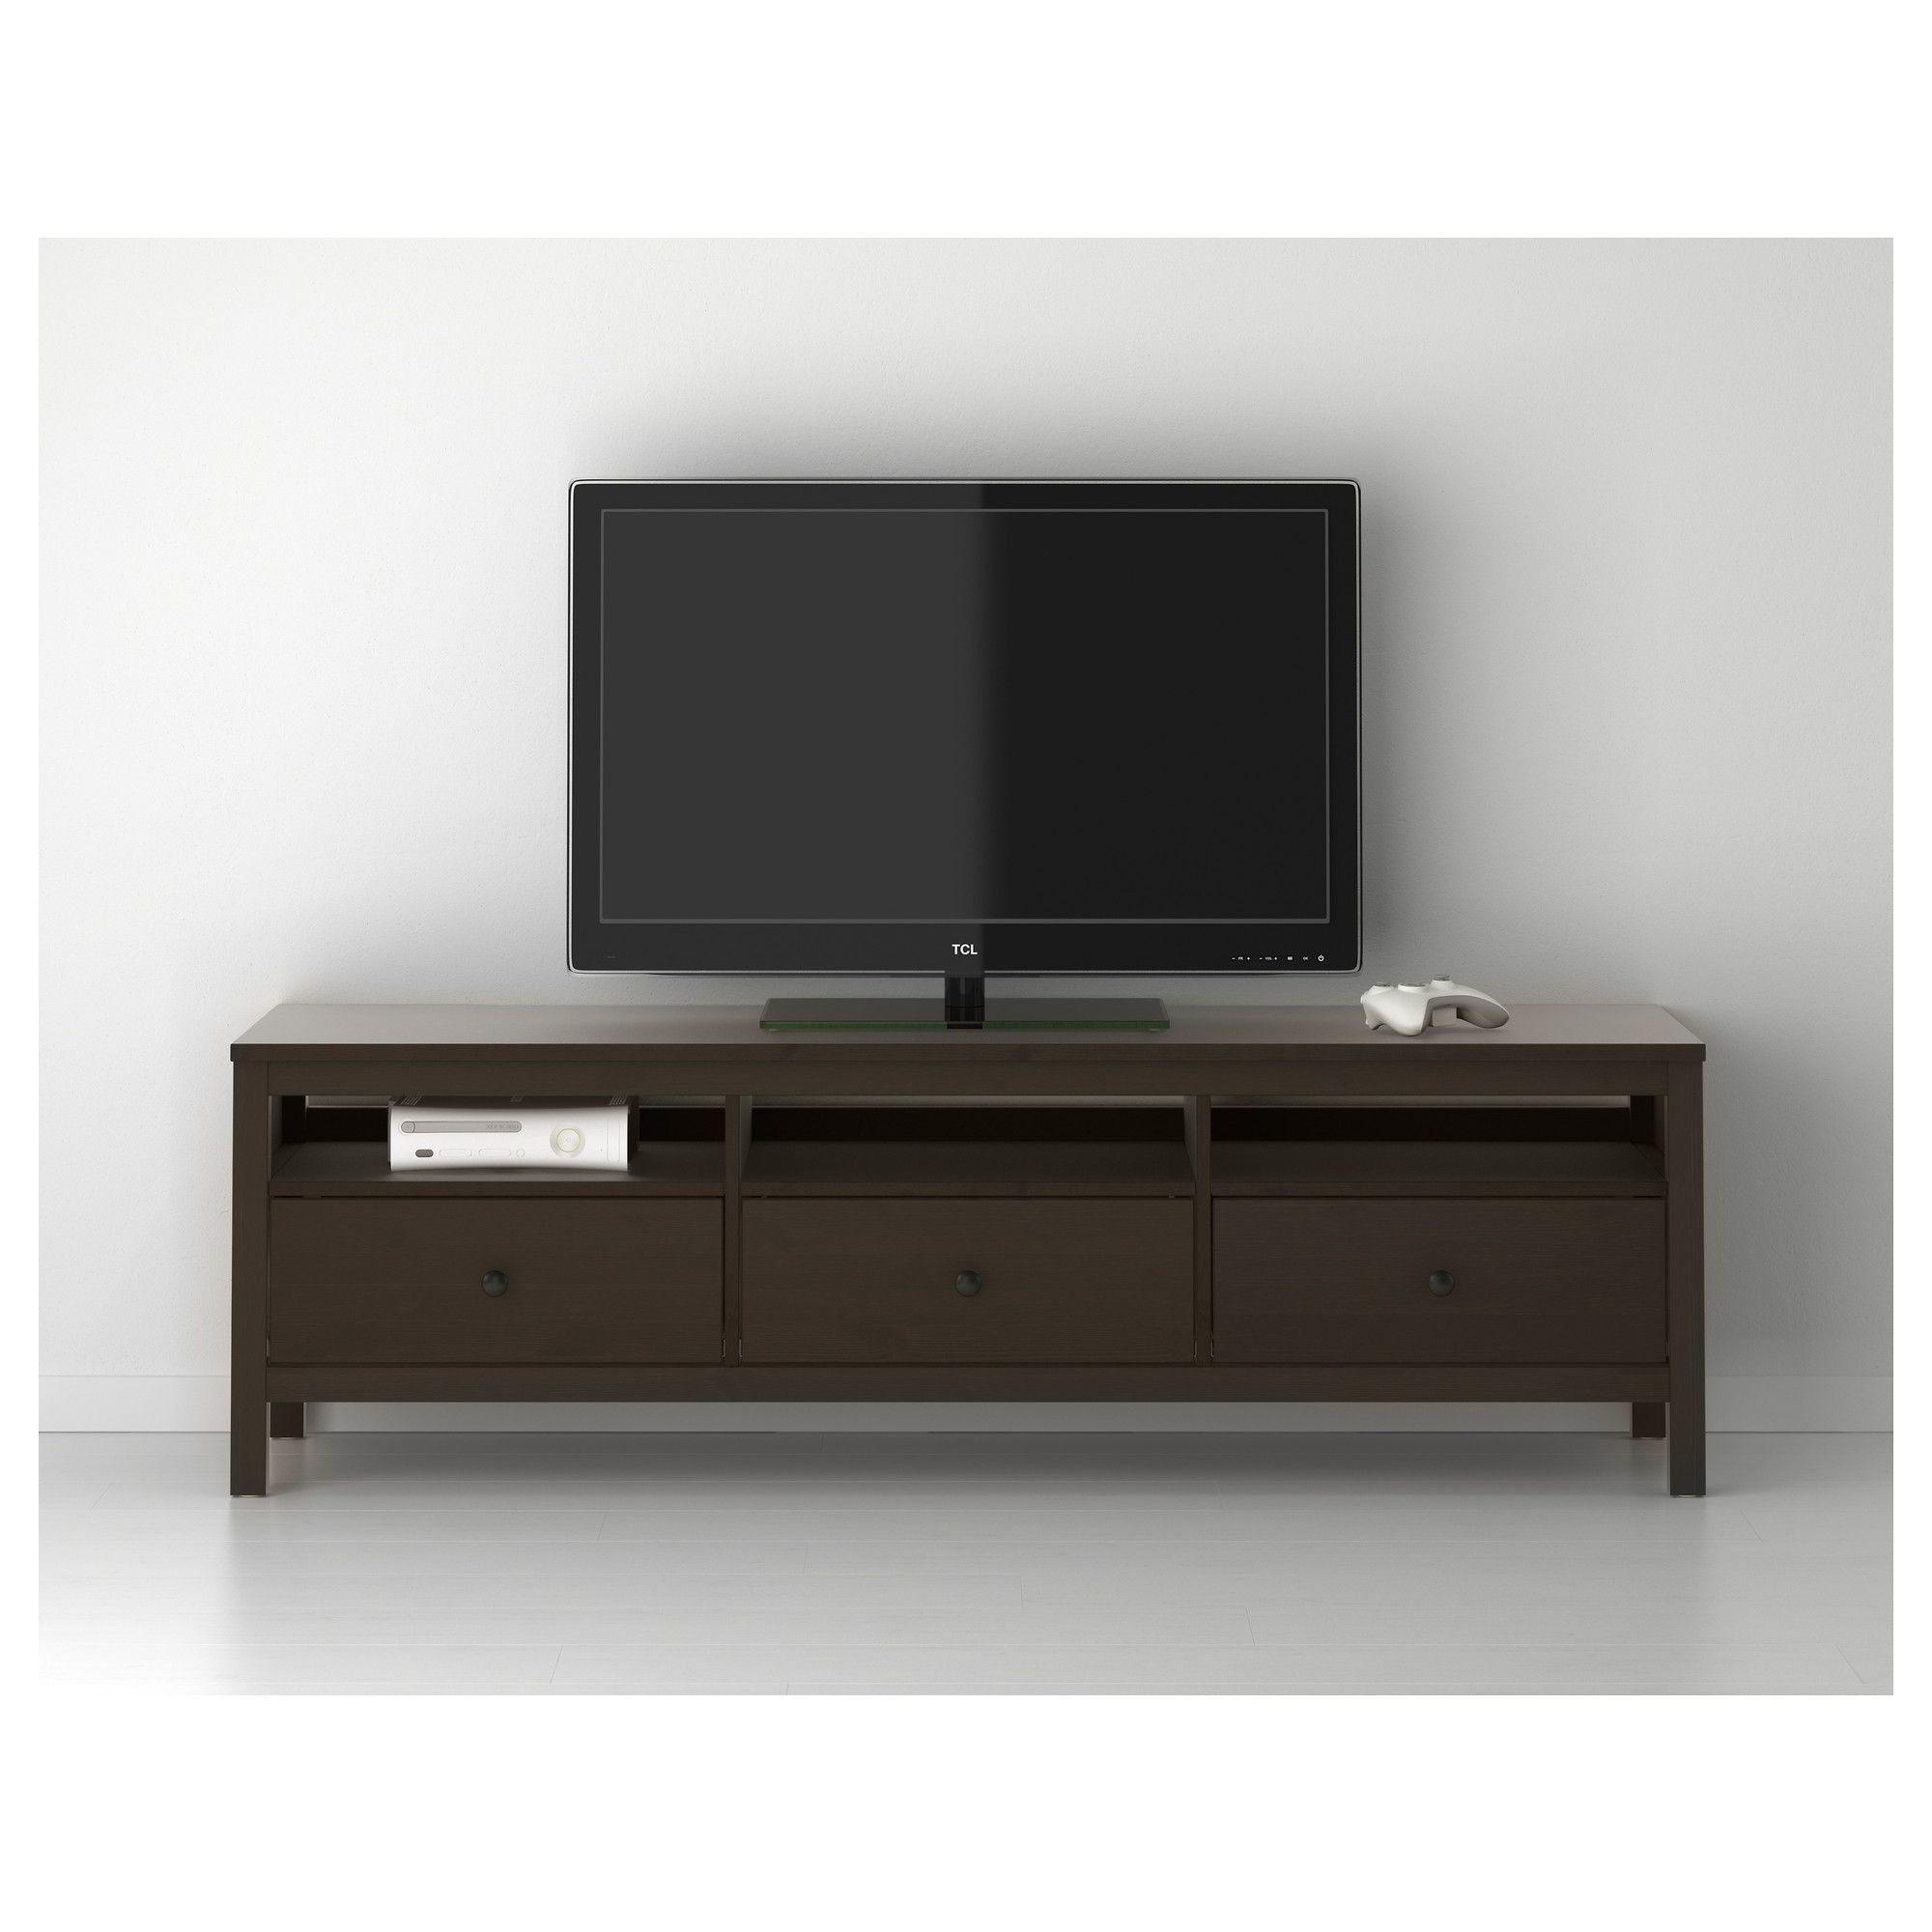 Hemnes tv ikea pinterest - Ikea table tv ...